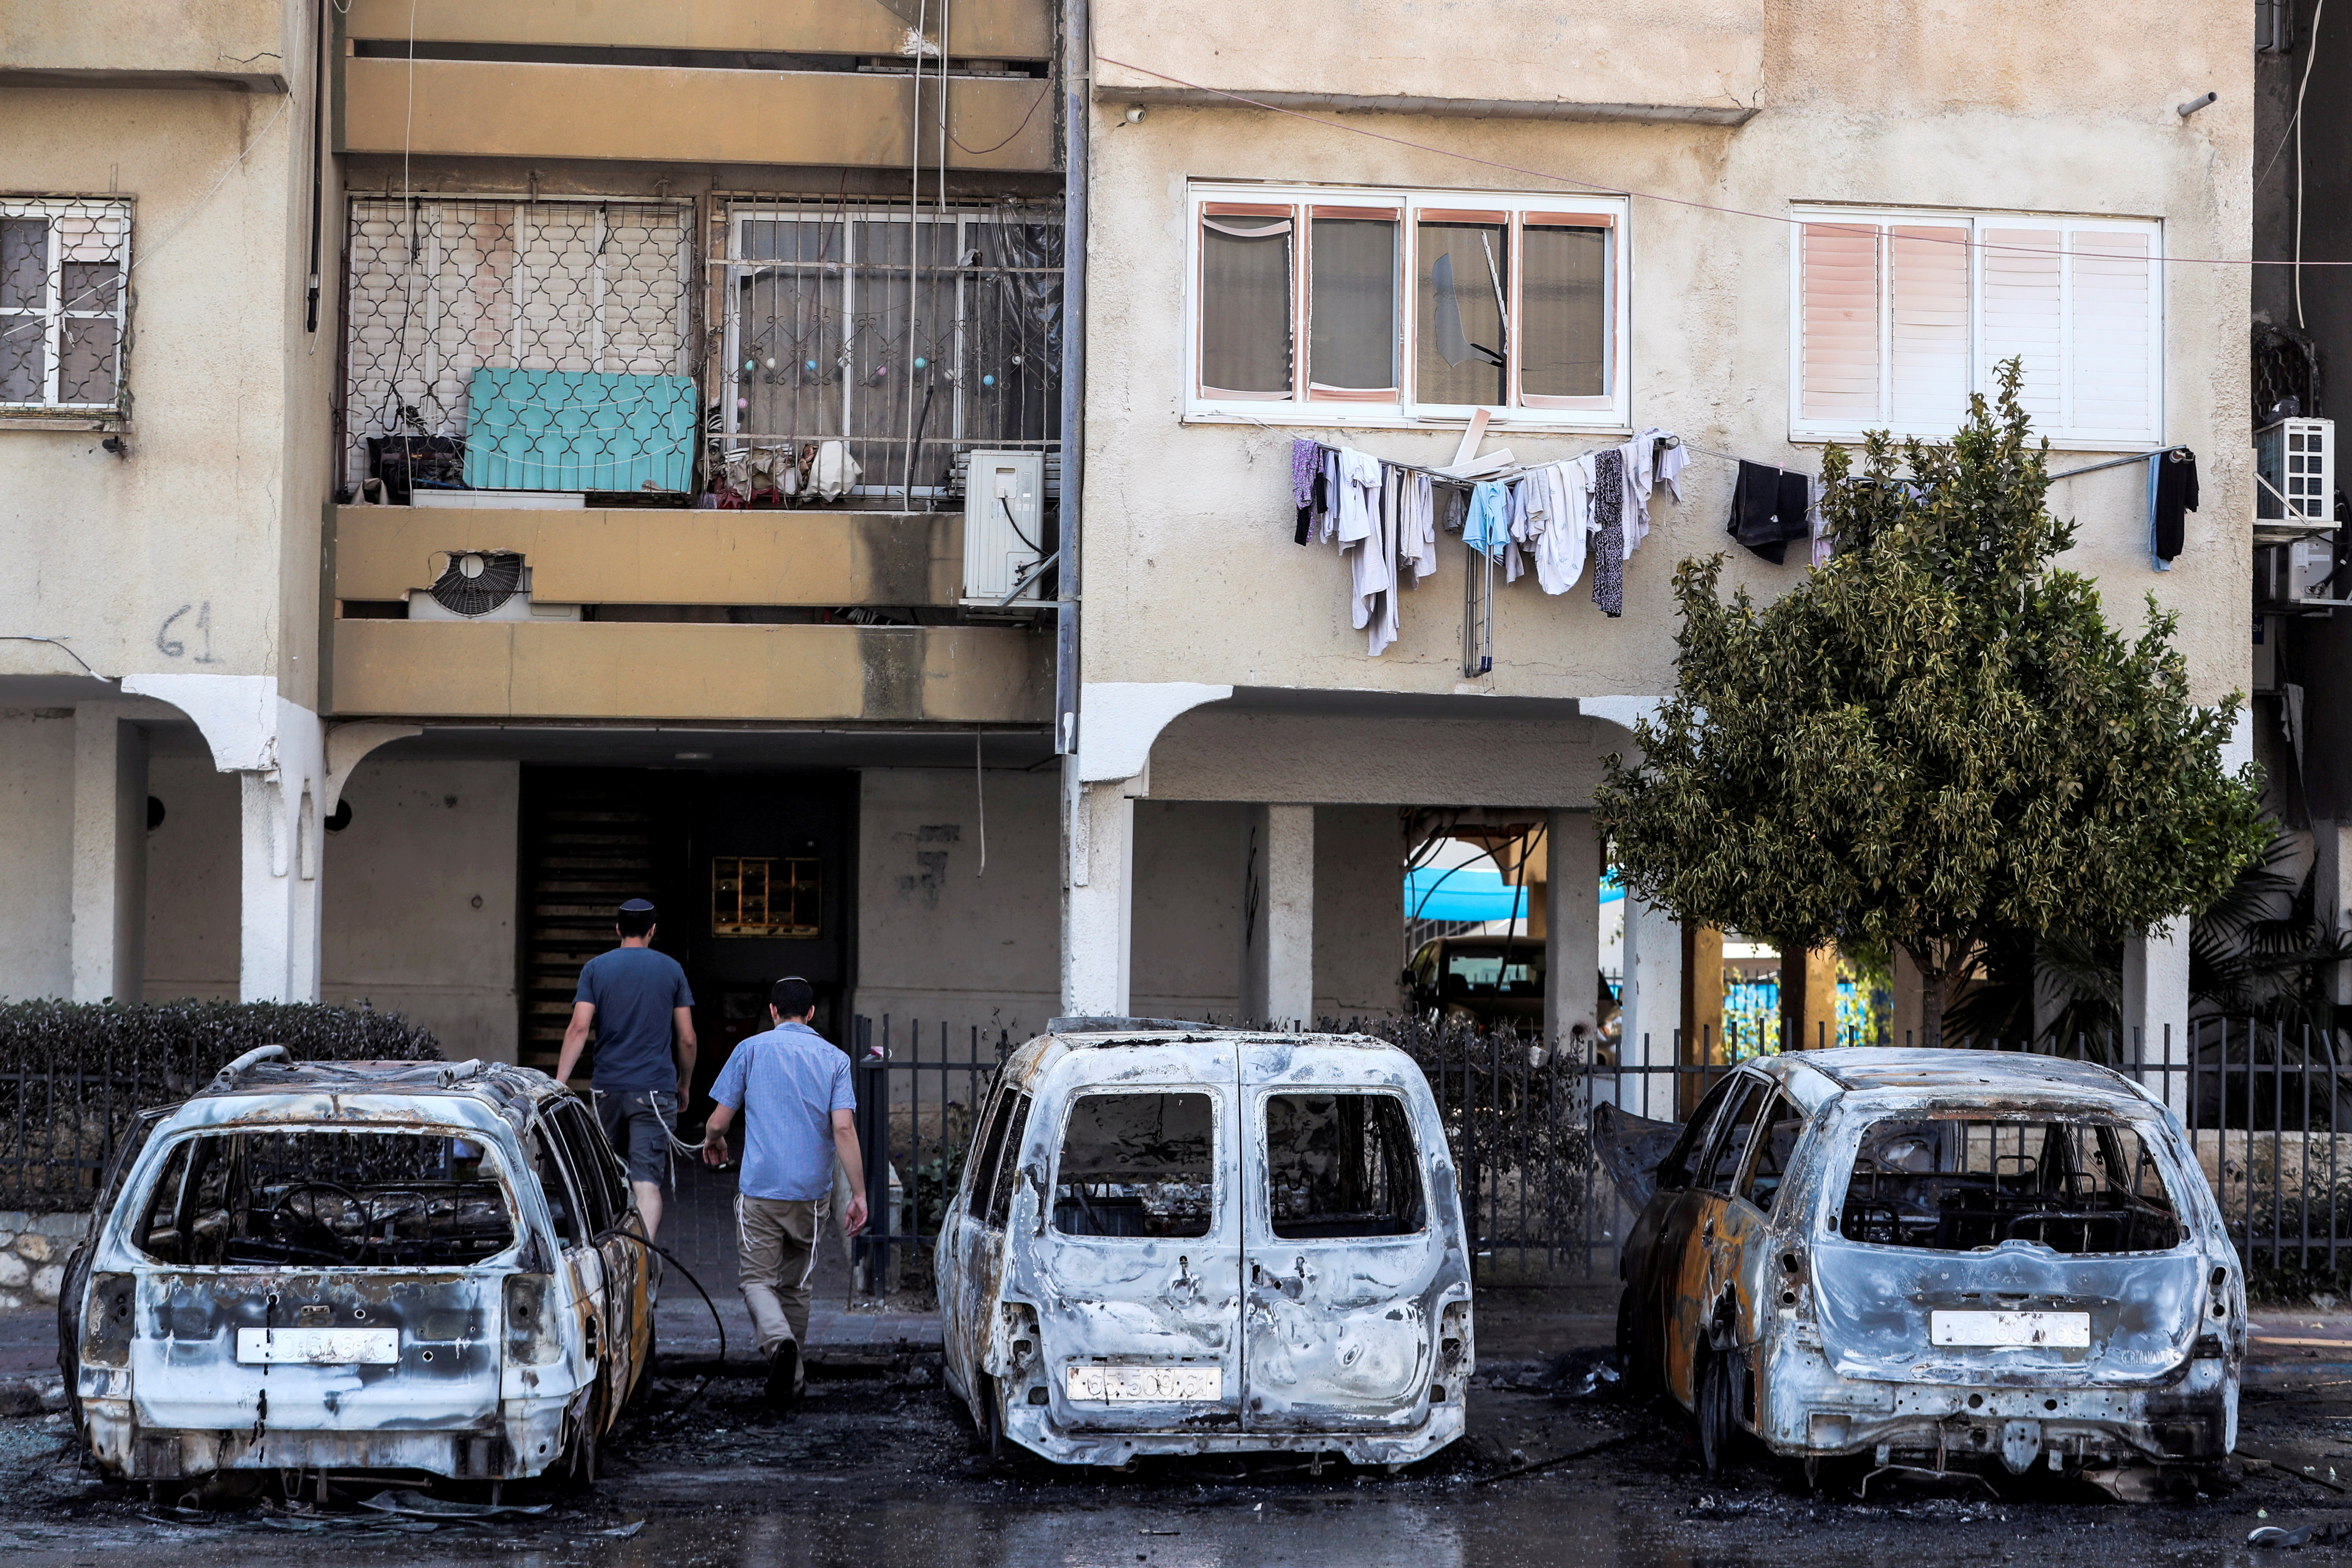 People walk next to burnt vehicles as they enter a building after violent confrontations in the city of Lod, Israel, between Israeli Arab demonstrators and police,  amid high tensions over hostilities between Israel and Gaza militants and tensions in Jerusalem May 12, 2021. REUTERS/Ronen Zvulun